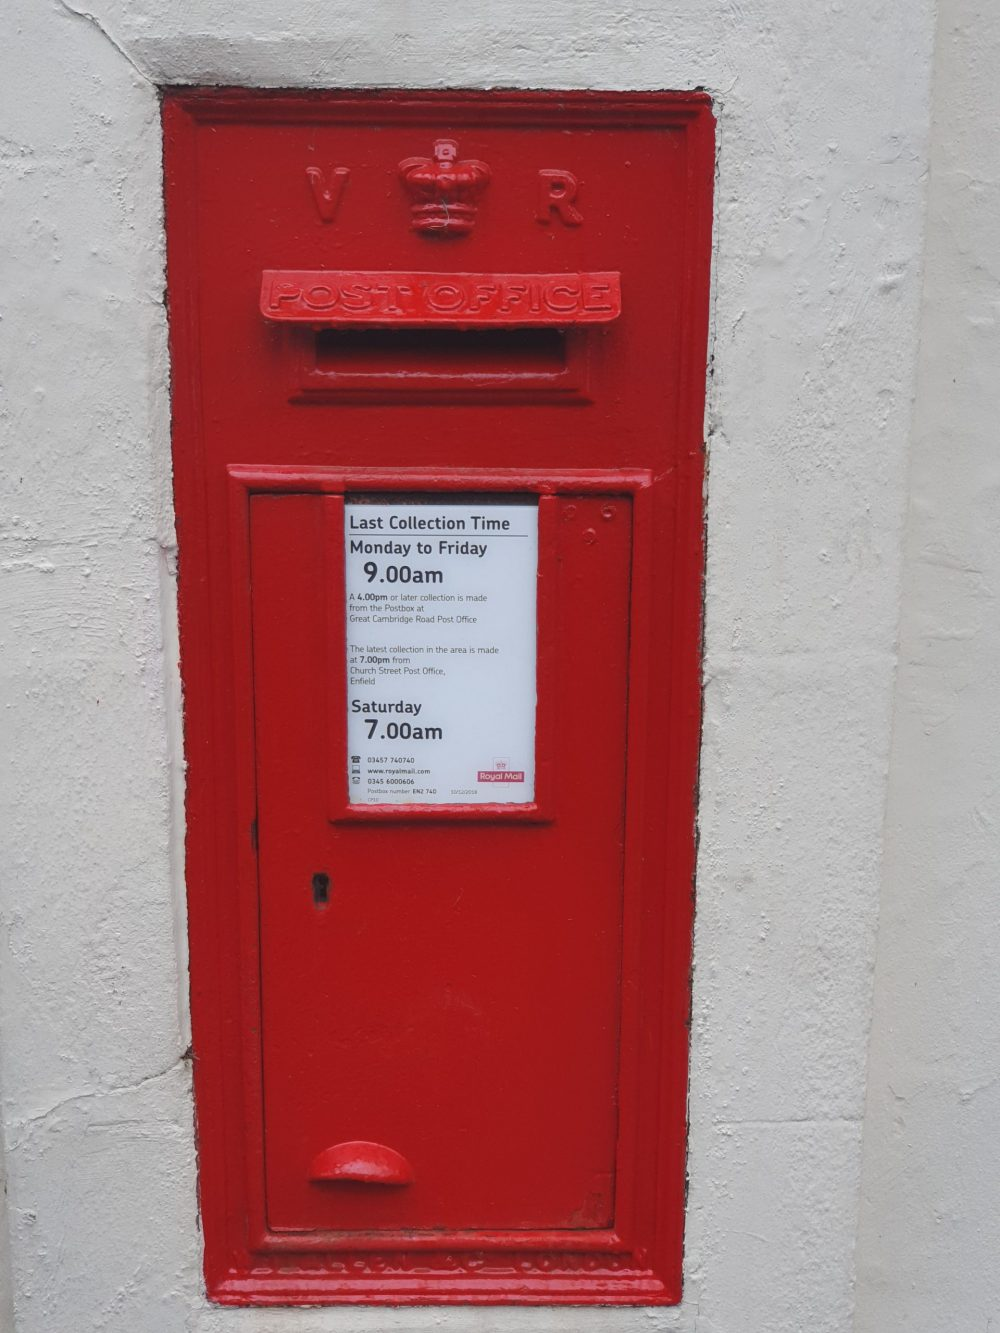 The wallbox in Forty Hill is marked 'VR' after Queen Victoria (credit Steve Chandler)